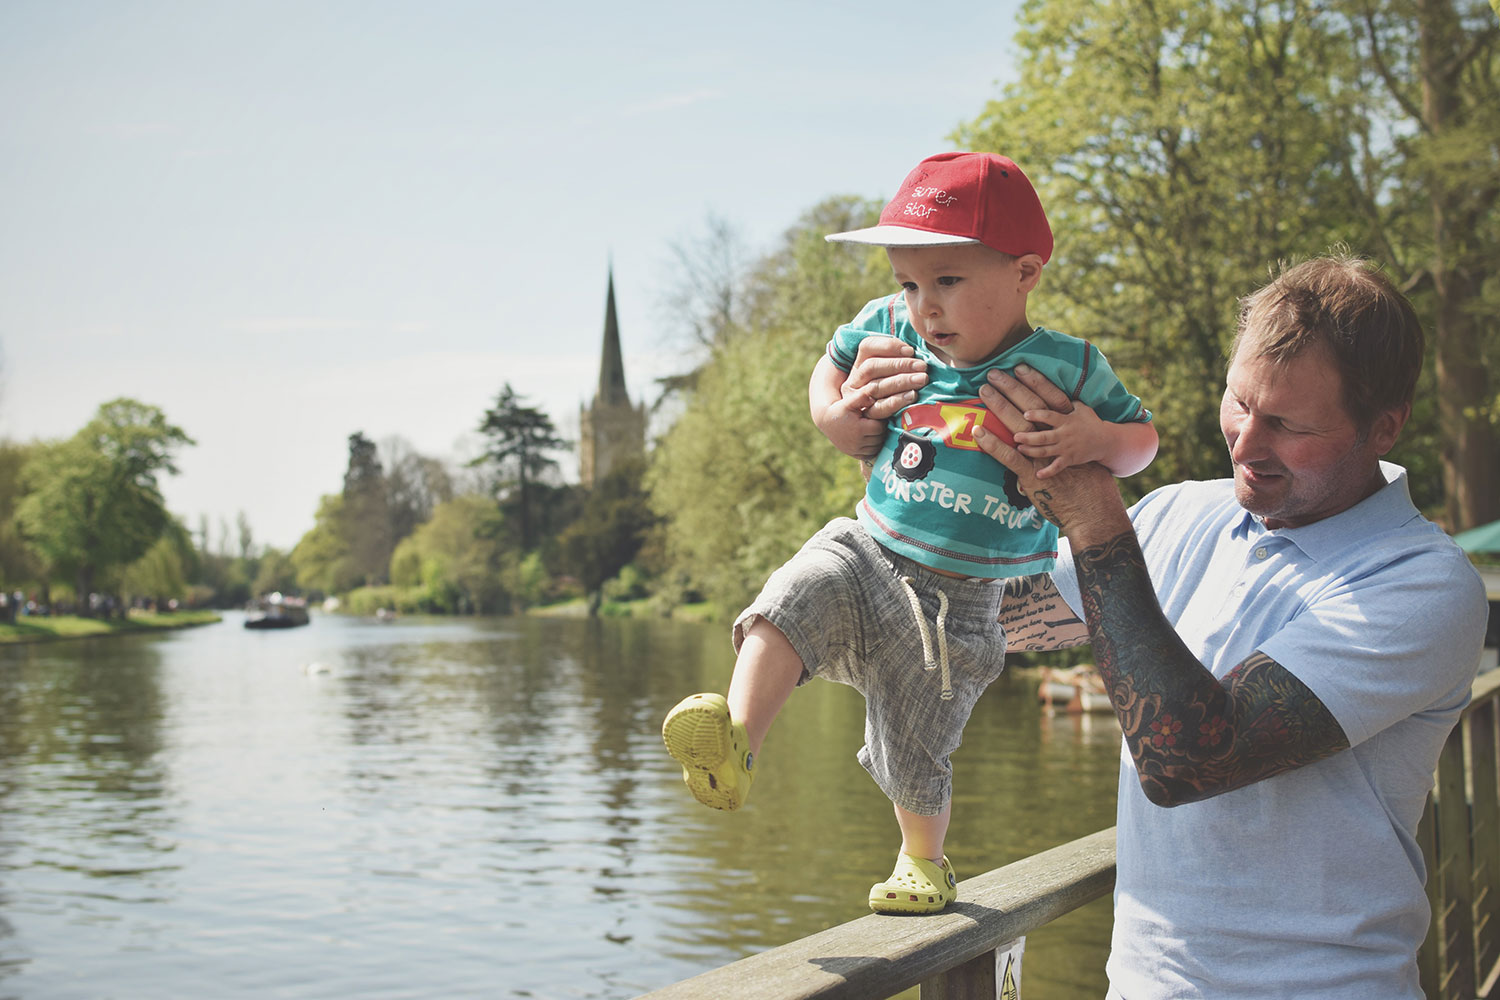 One Beautiful Sweaty Sunday at Stratford-upon-Avon - Toddler walking on the bridge with Grandad at Stratford-upon-Avon on a warm, sunny day